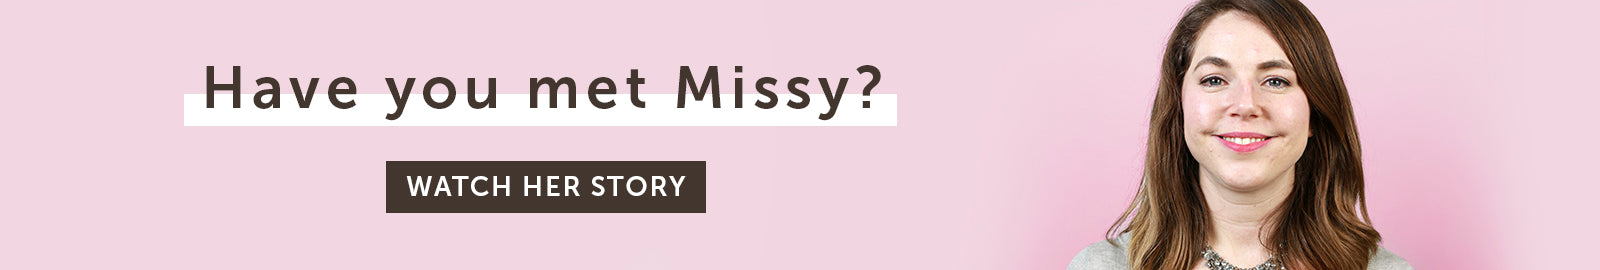 Have you met Missy? Watch her story.